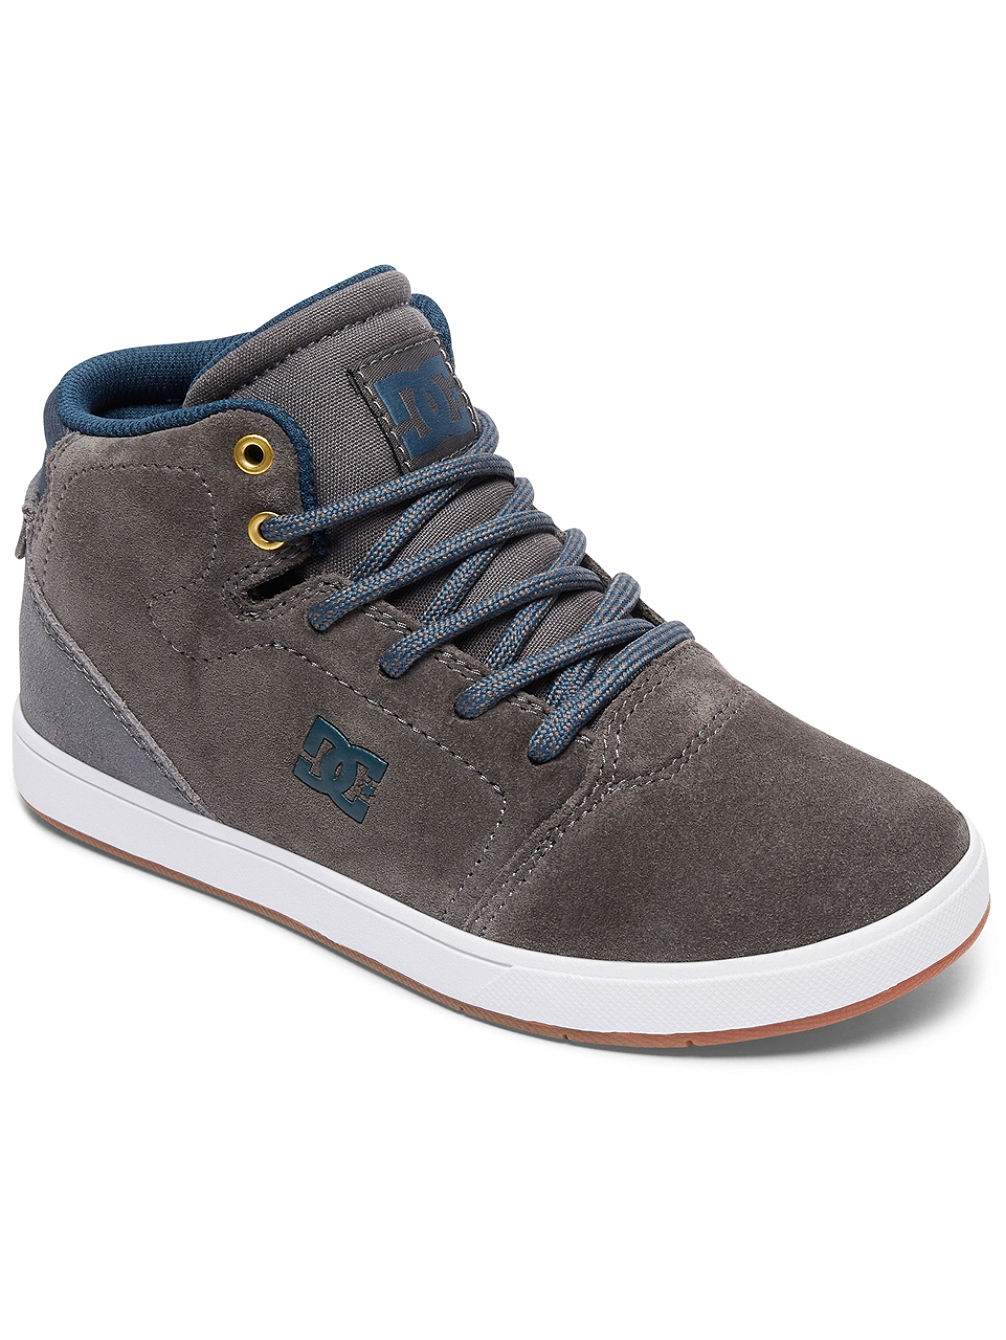 Crisis High Sneakers Jungen